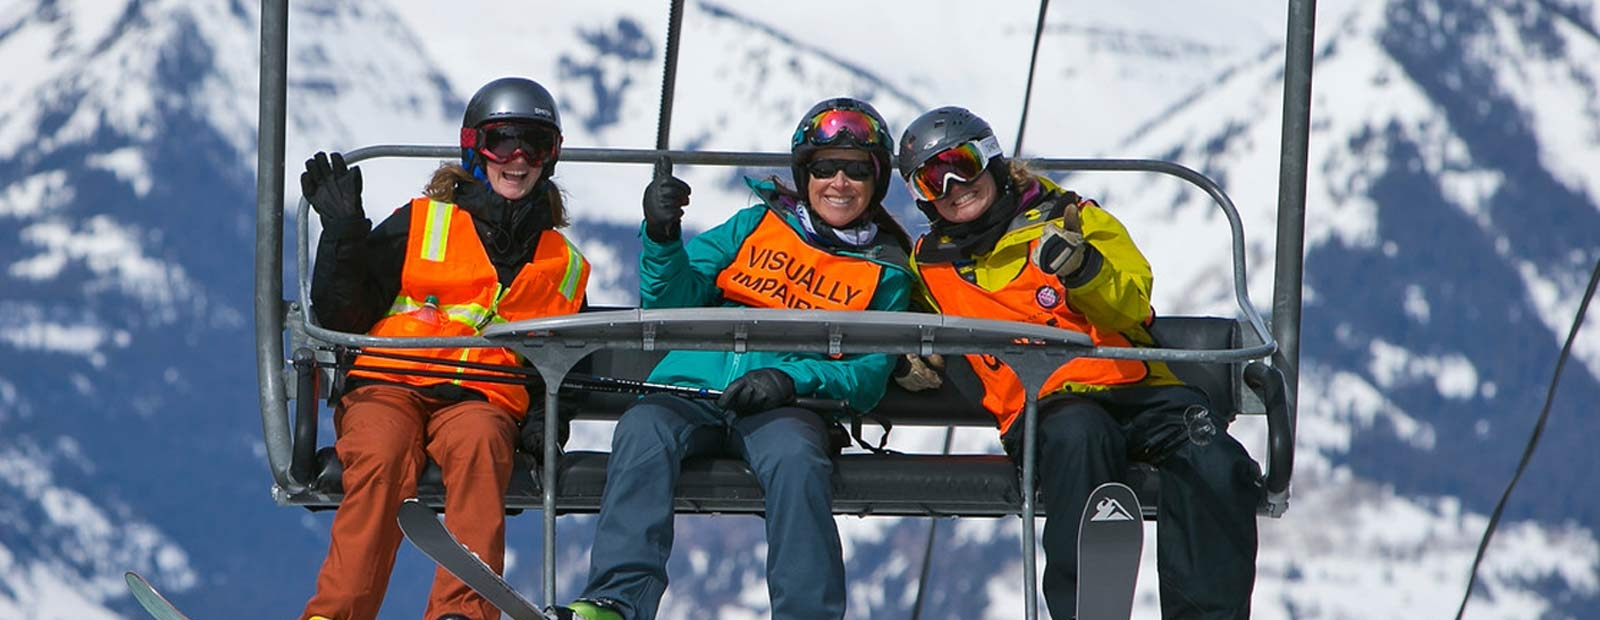 Three people riding up a ski lift to the top of a snow covered mountain